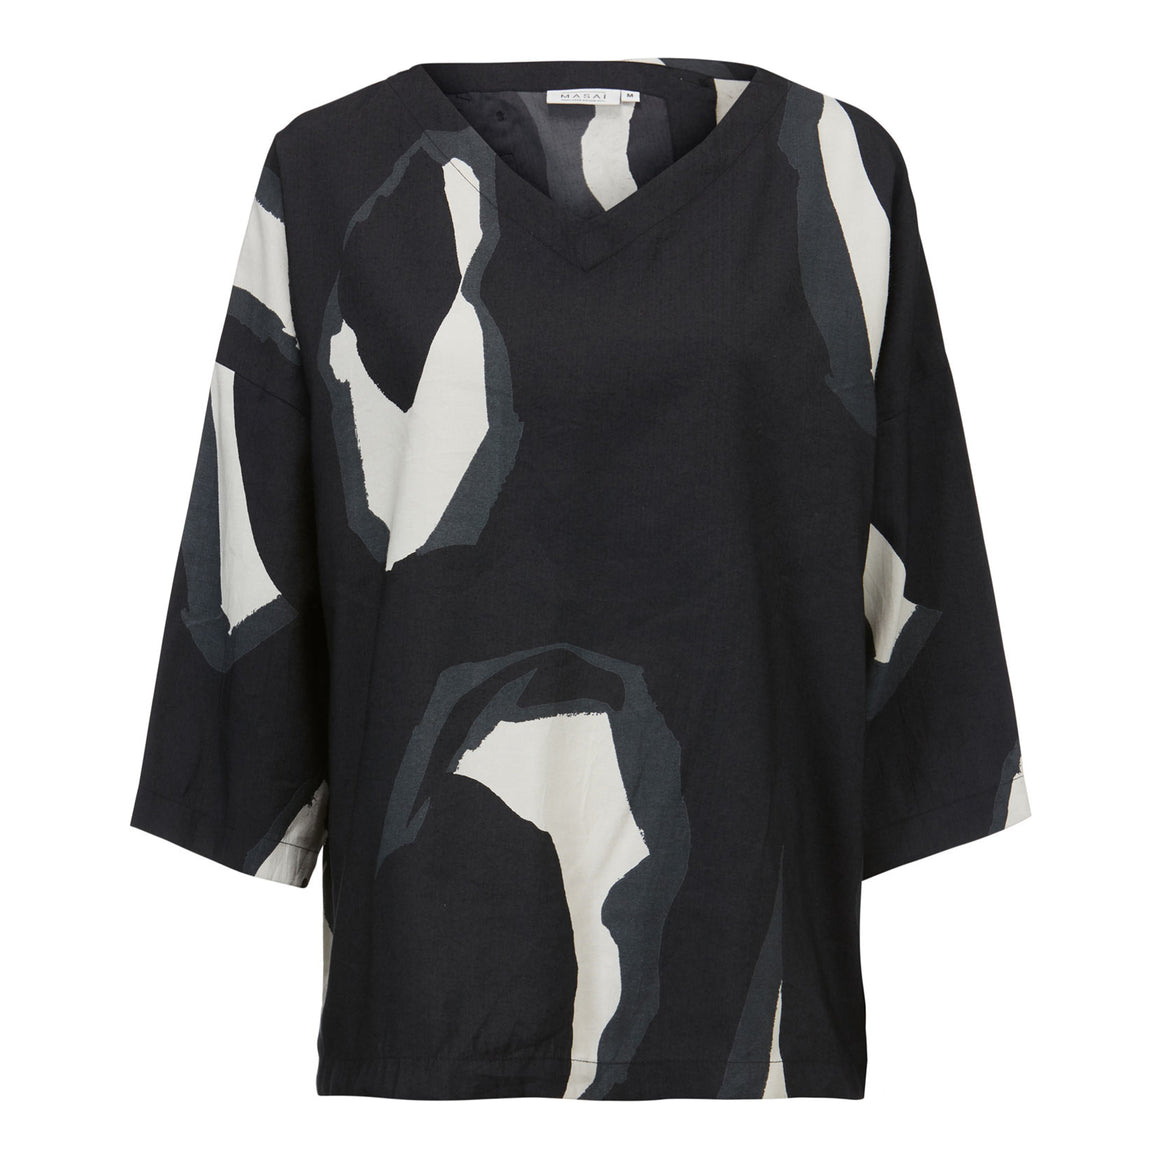 Darleen Print Top for Women in Black